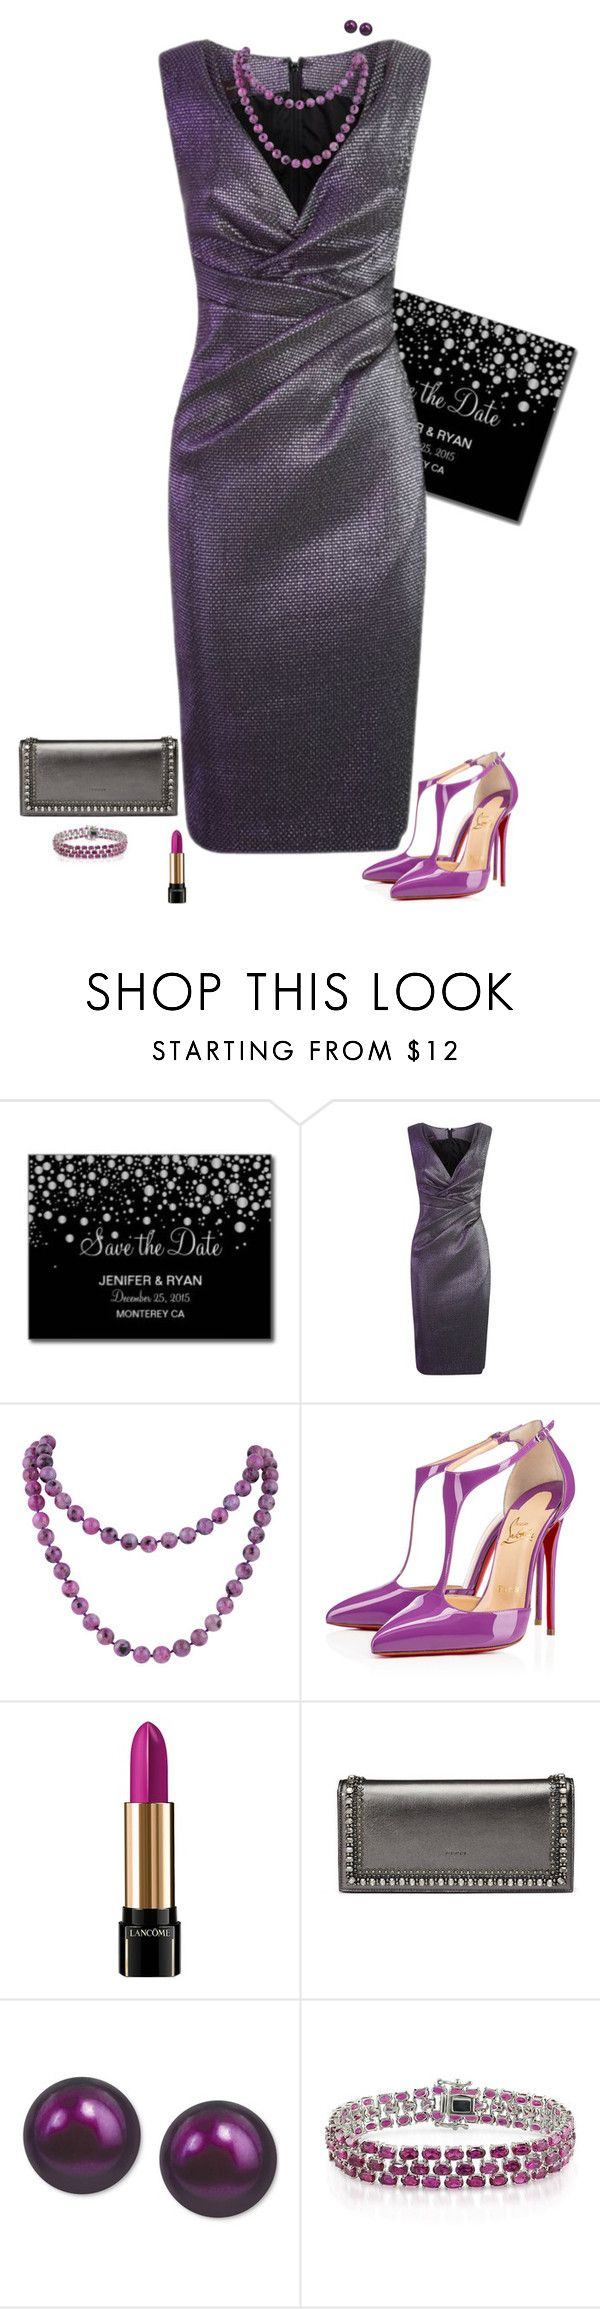 """Wedding guest"" by julietajj ❤ liked on Polyvore featuring Talbot Runhof, Christian Louboutin, Lancôme, Gucci, Honora and Ice"